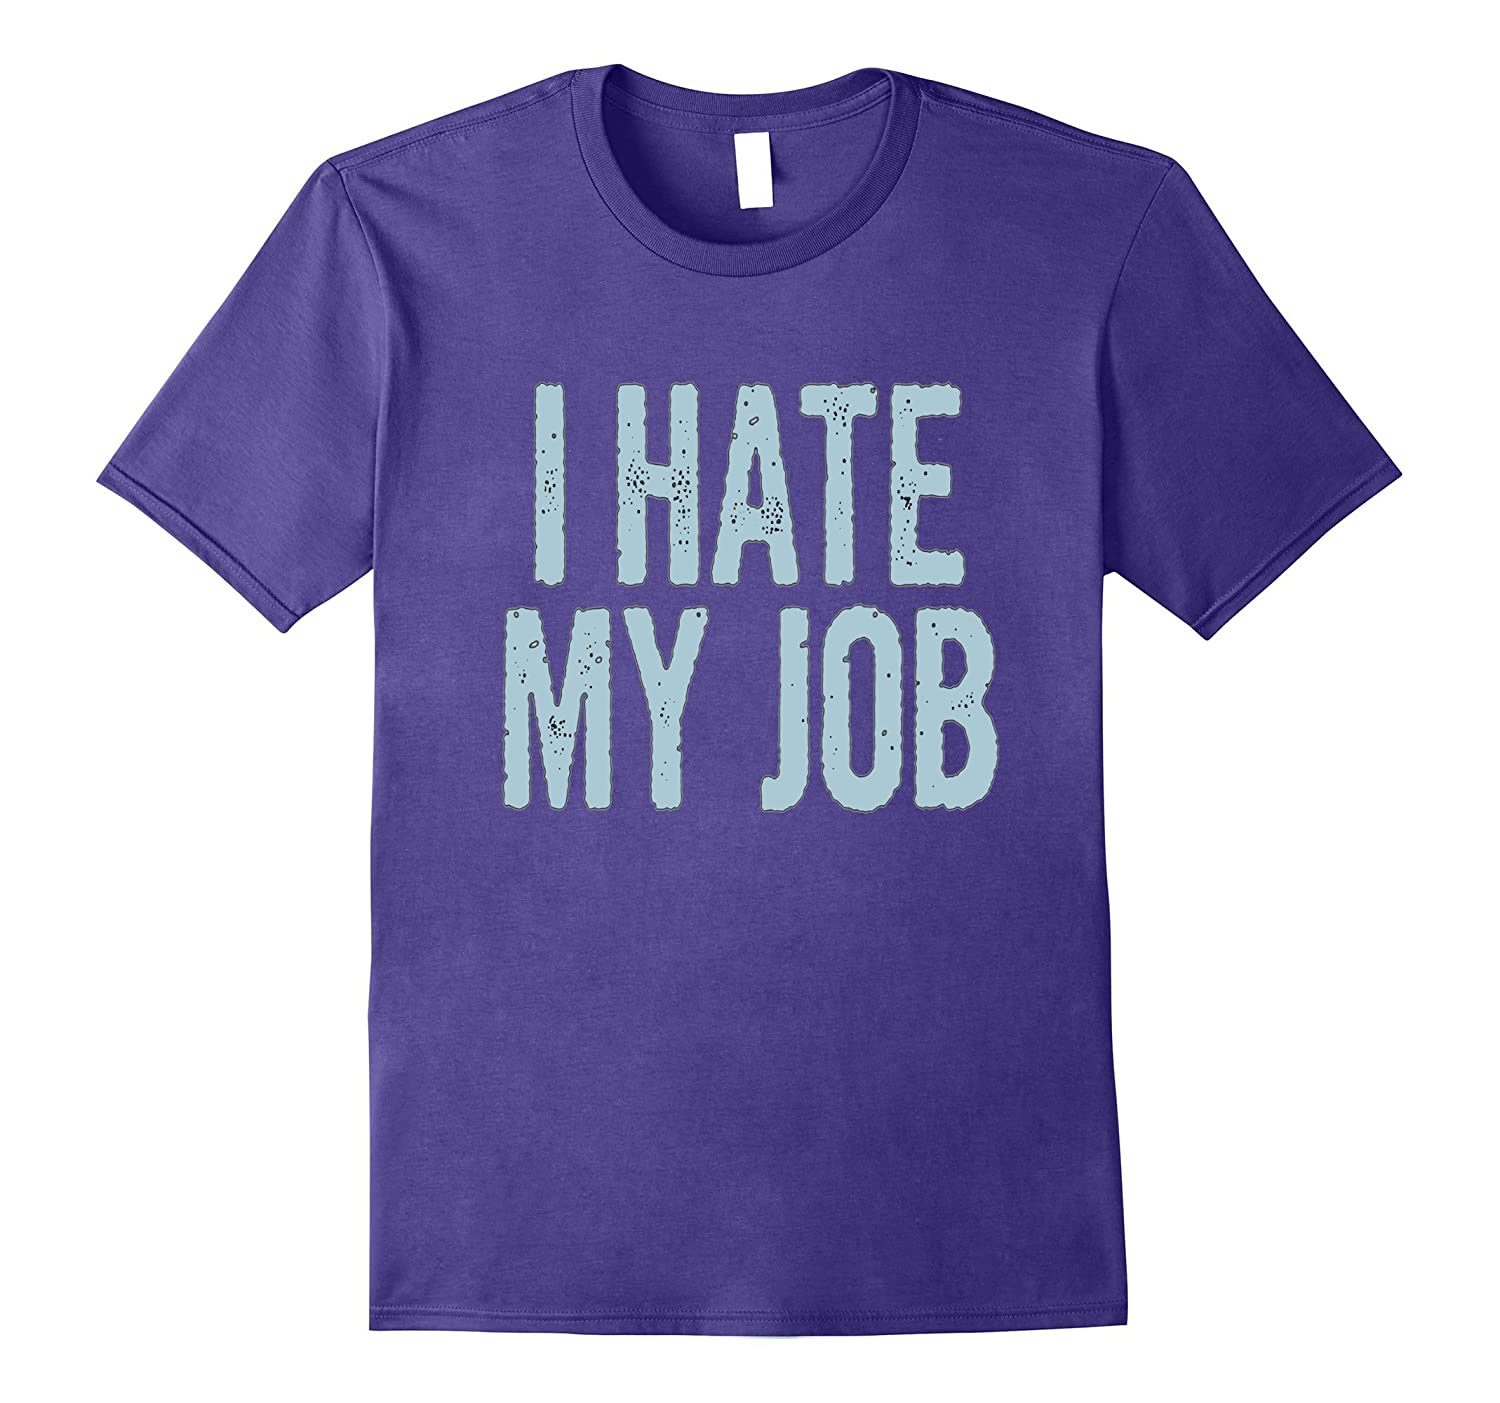 I Hate My Job Tee Shirt-TJ